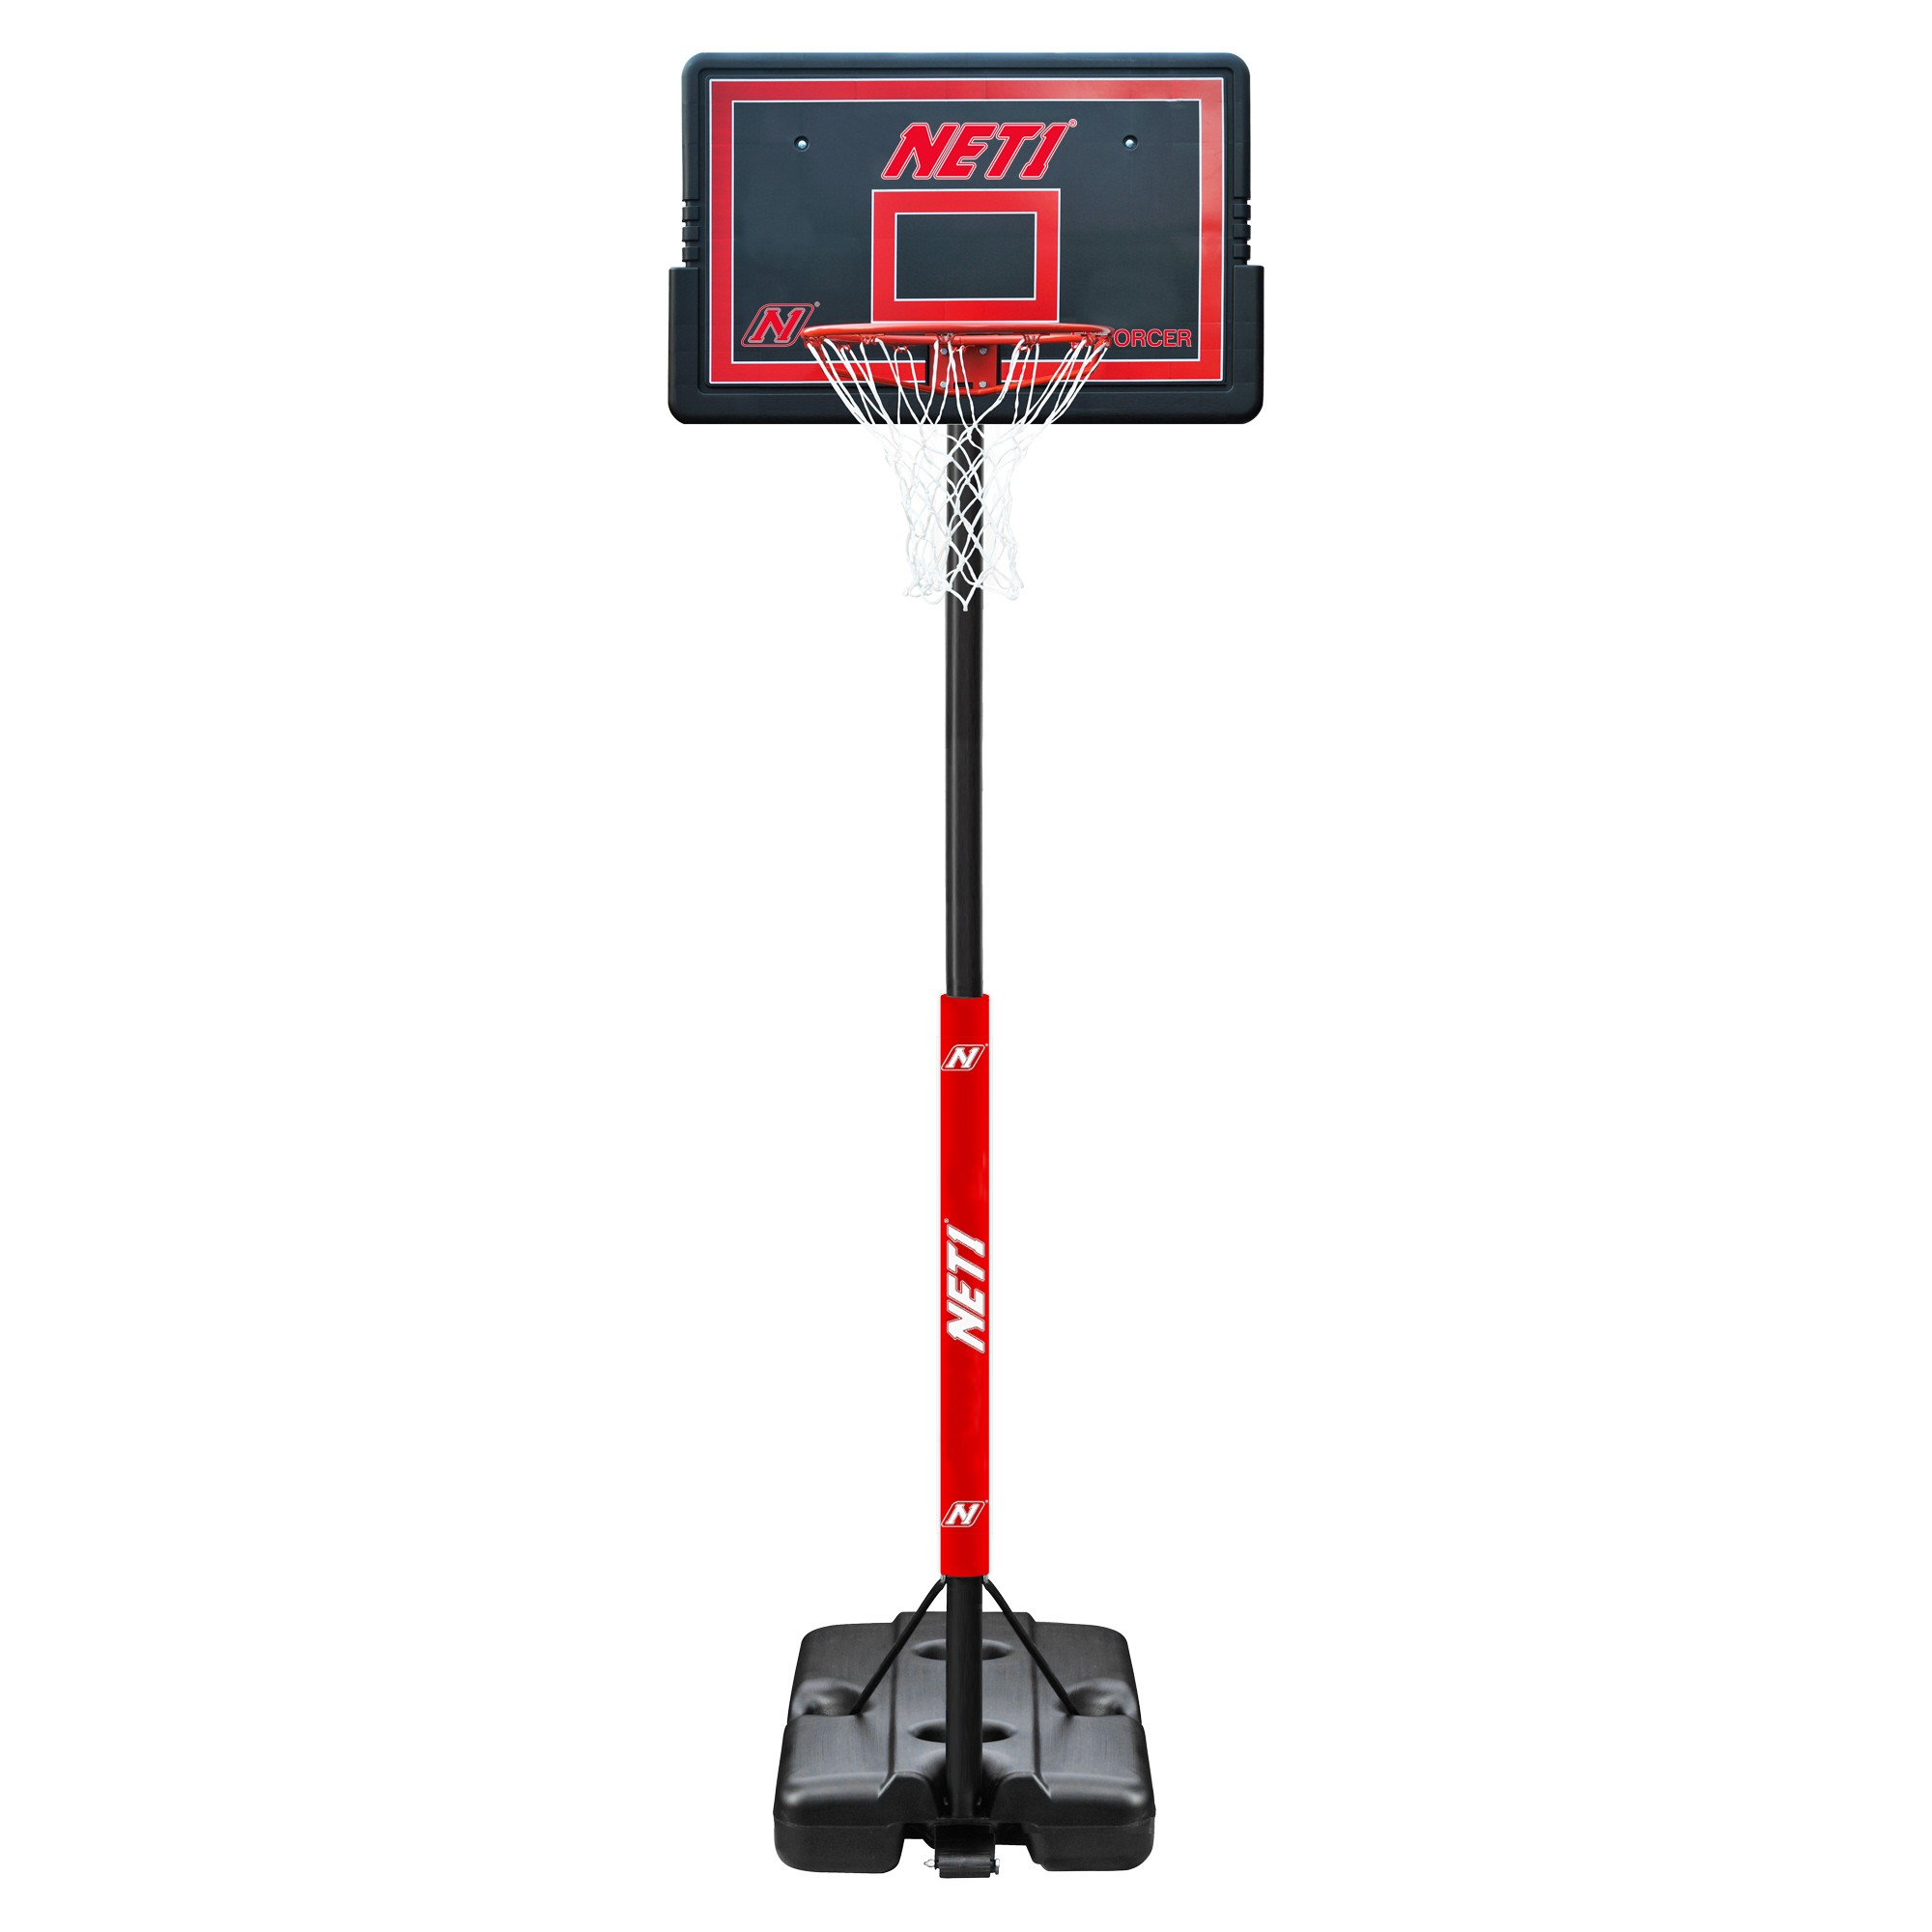 Enforcer Portable Basketball Hoop